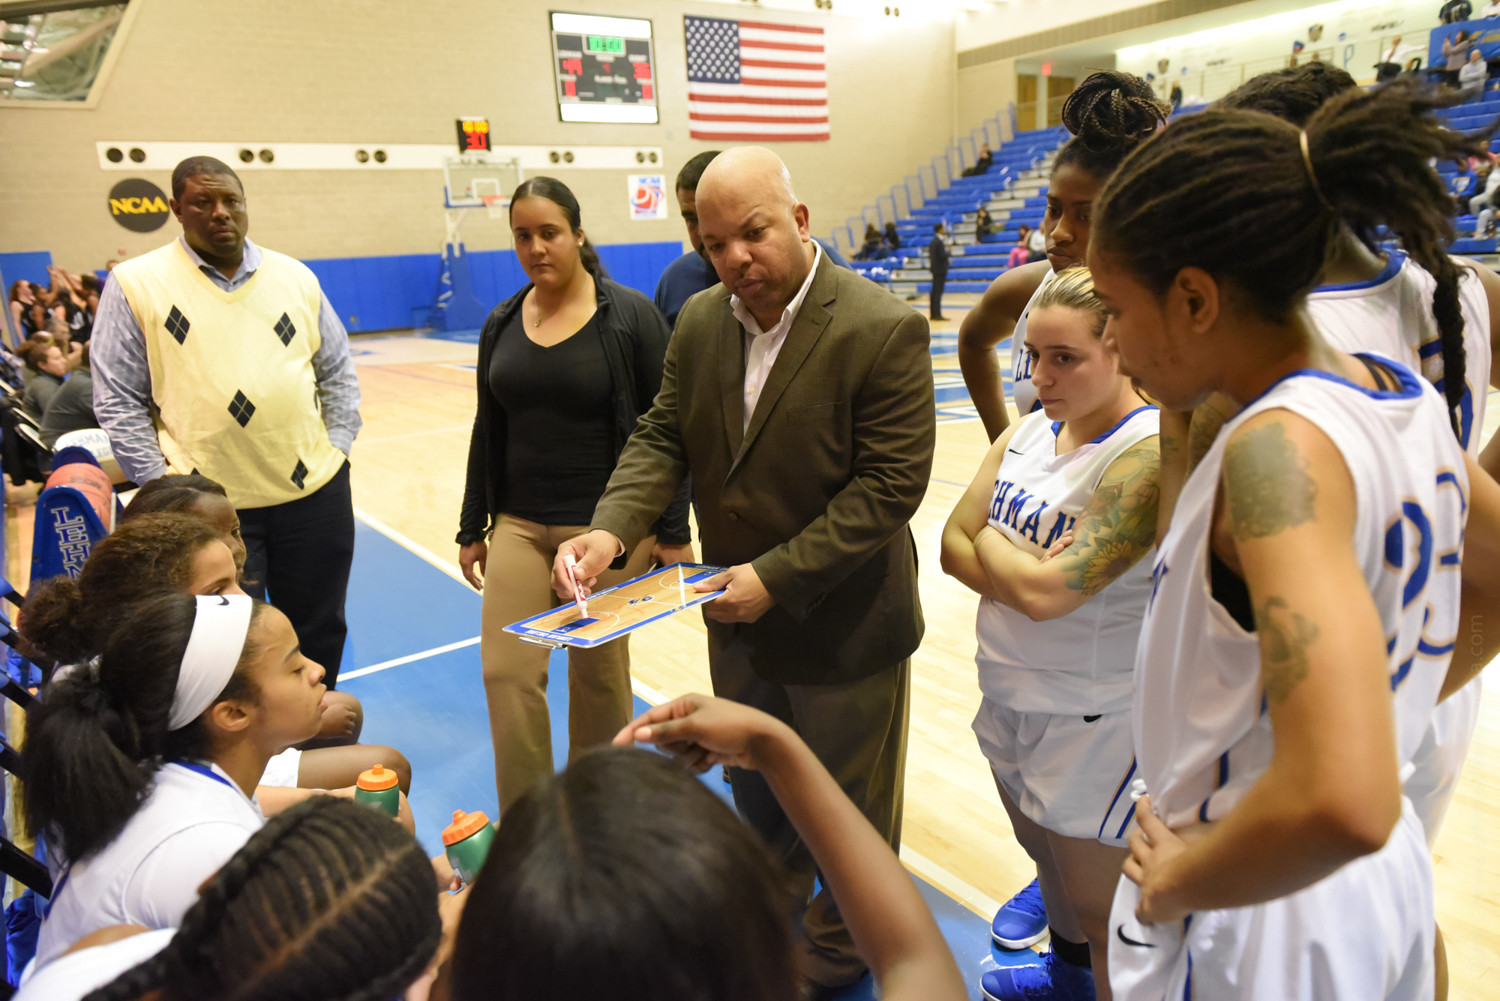 Eric Harrison is entering his 20th season as head coach of the Lehman College women's basketball team, and is currently just 10 wins shy of 300 for his career.